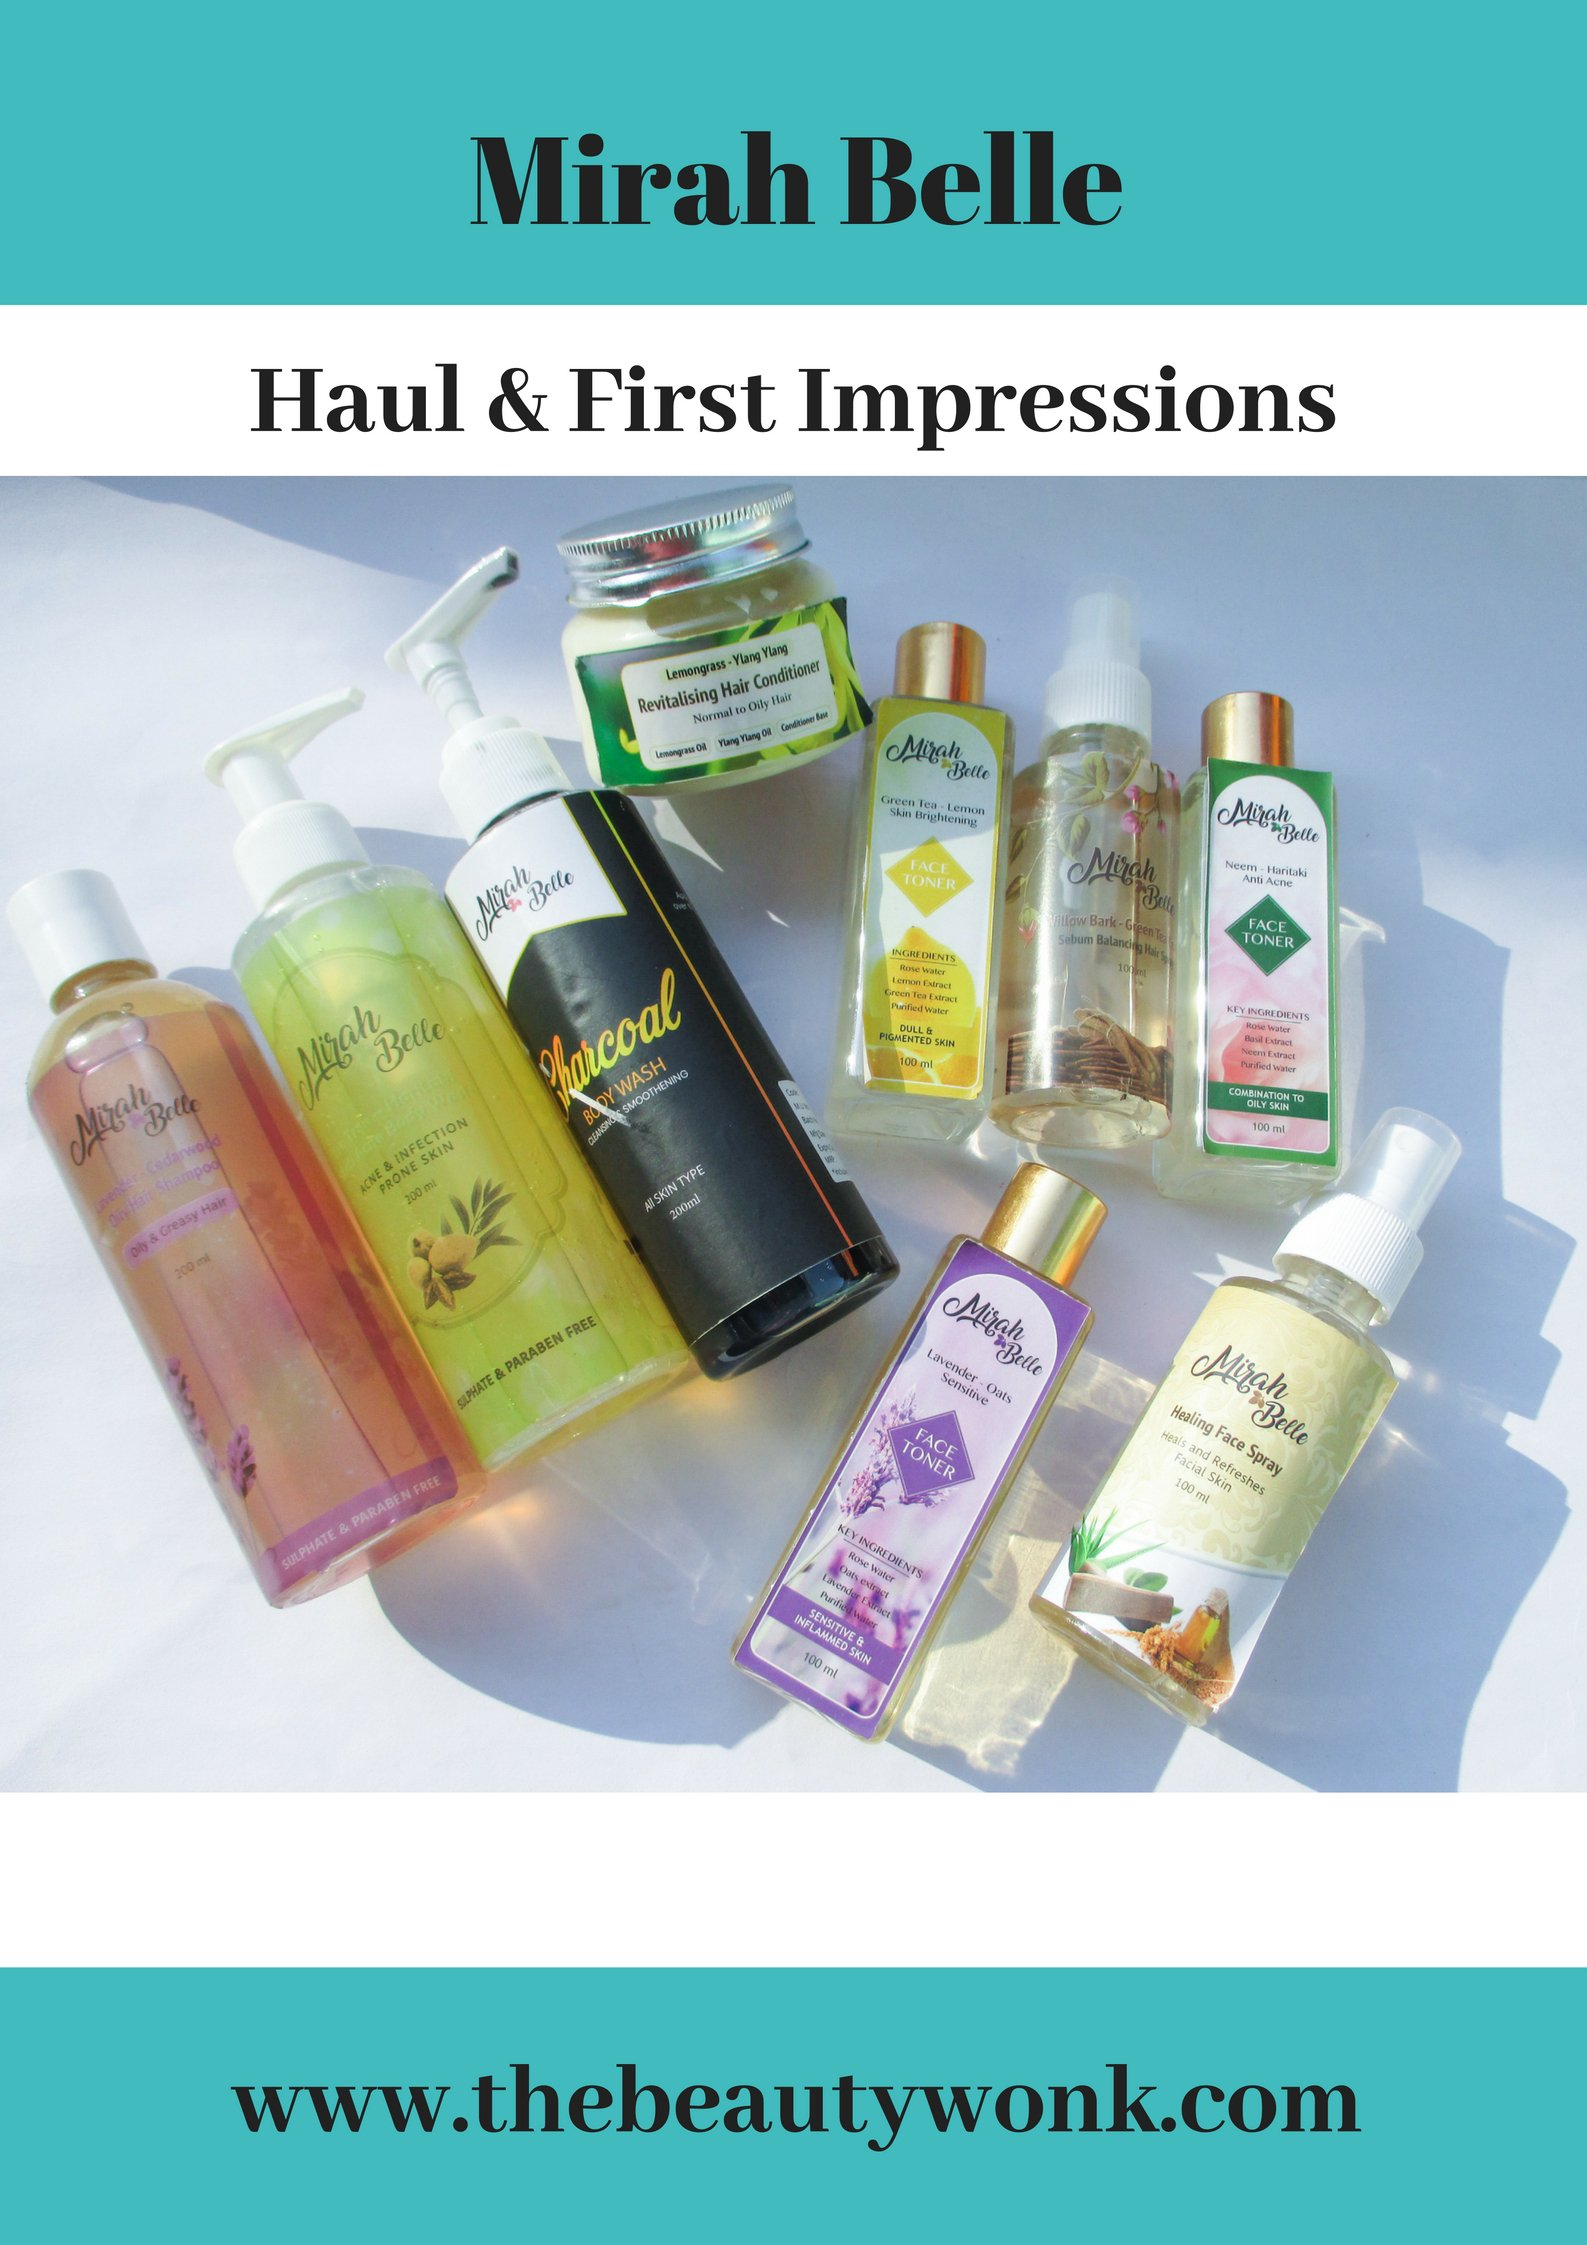 Mirah Belle - Haul & First Impressions